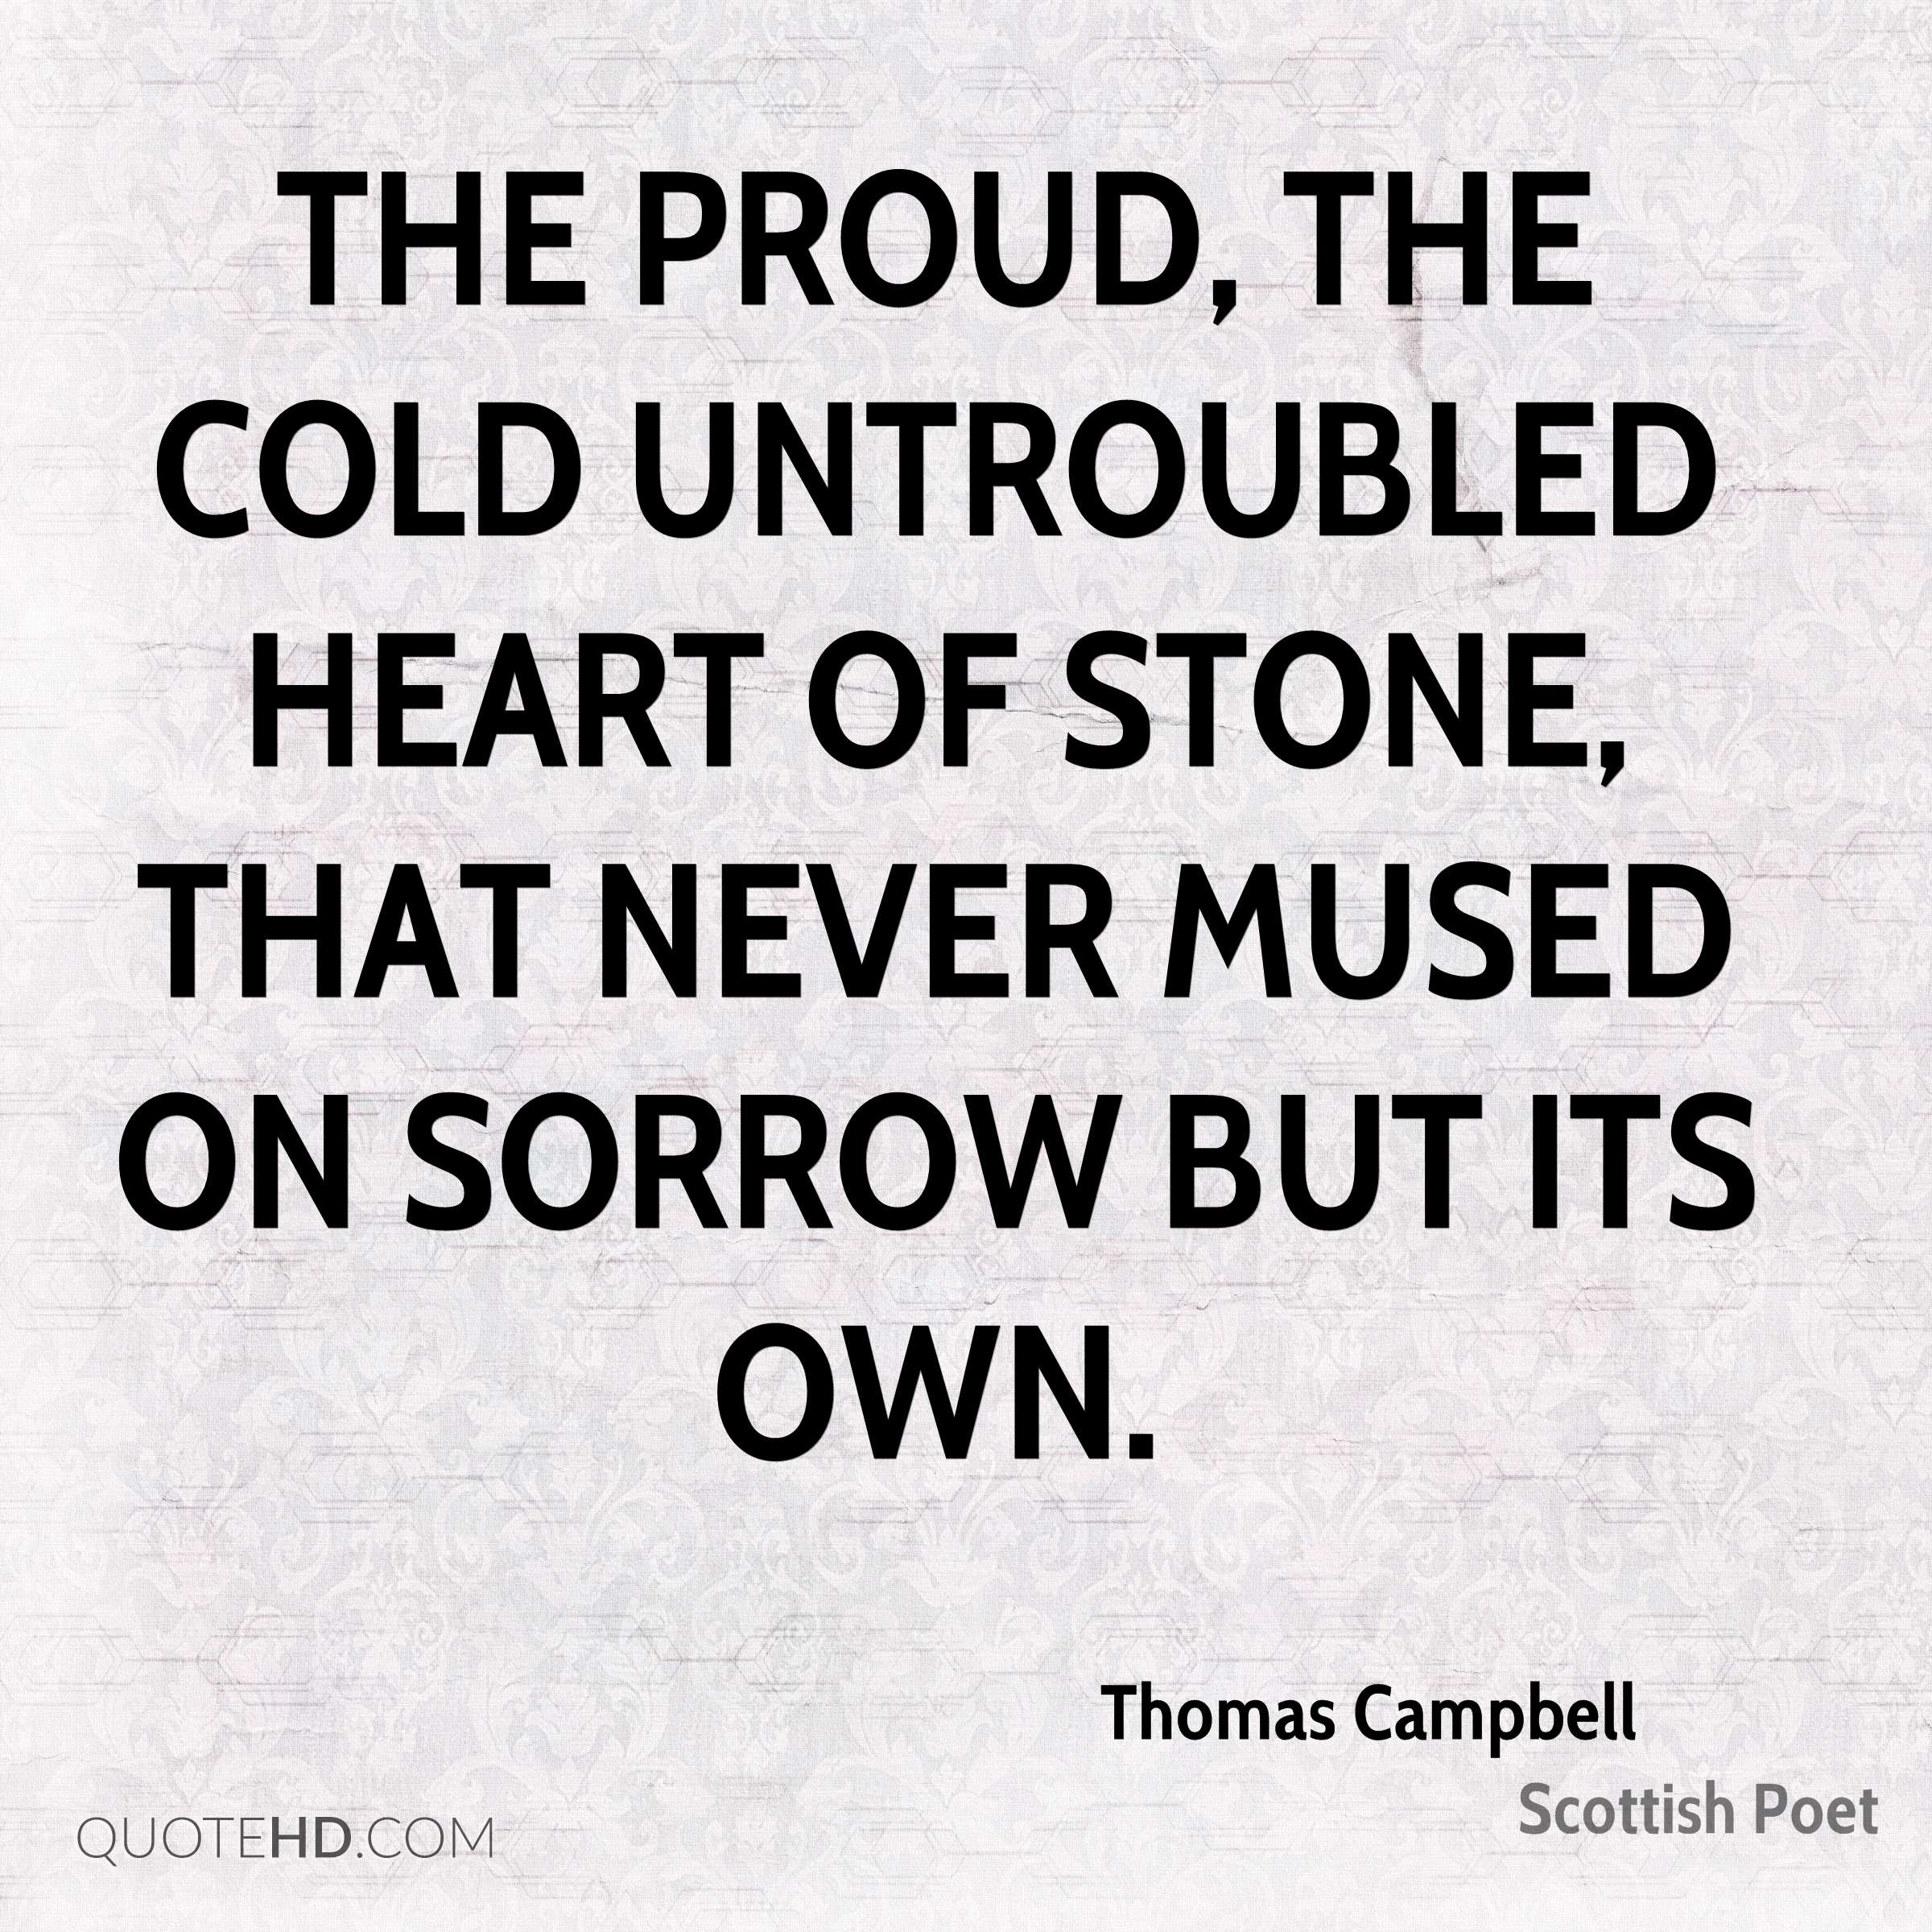 The proud, the cold untroubled heart of stone, that never mused on sorrow but its own.